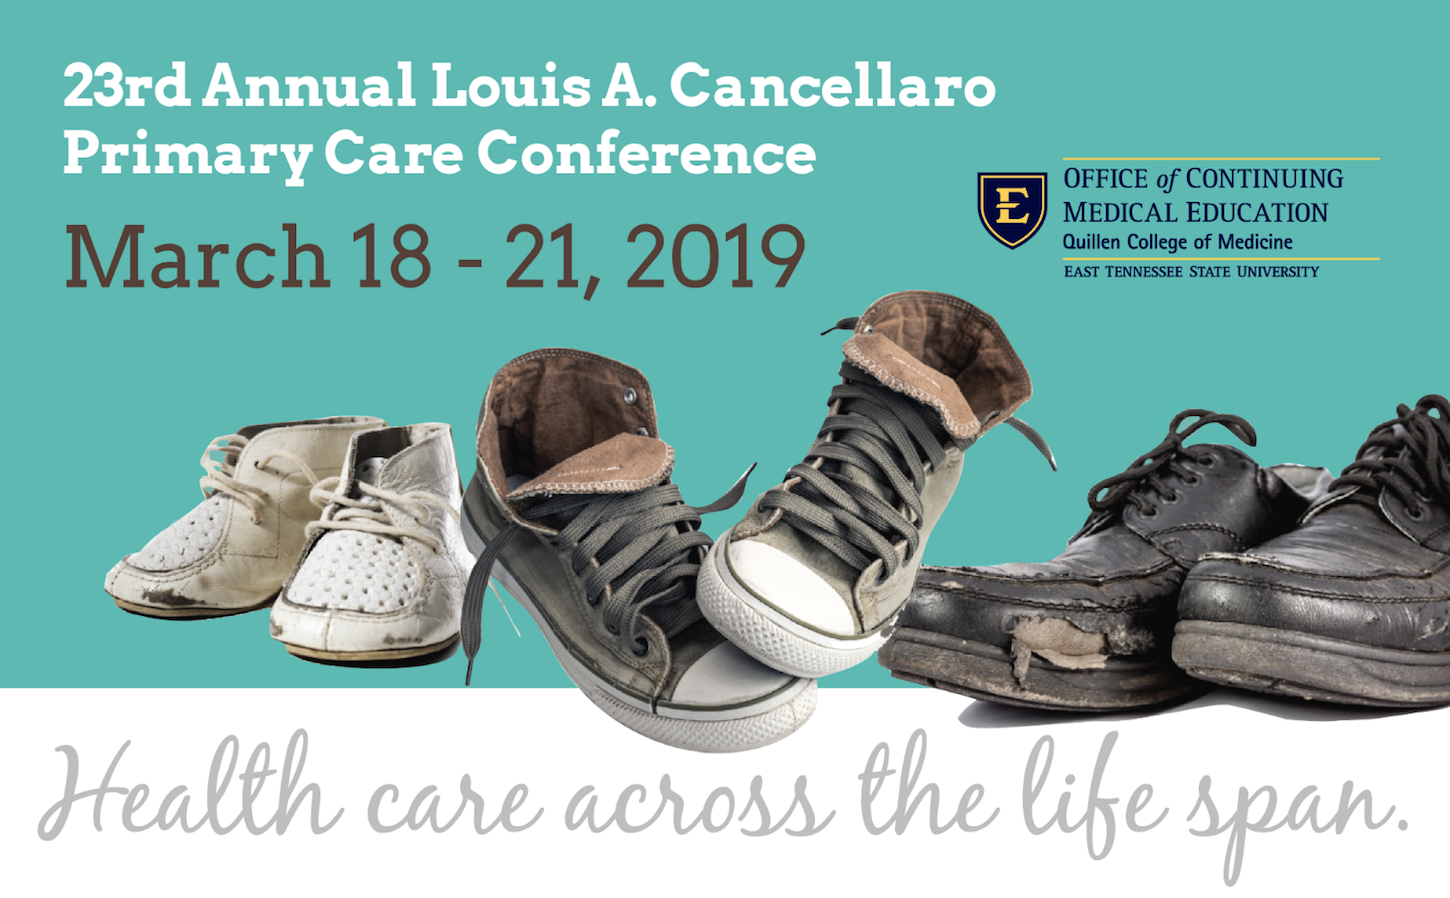 23rd Annual Louis A. Cancellaro Primary Care Conference Banner